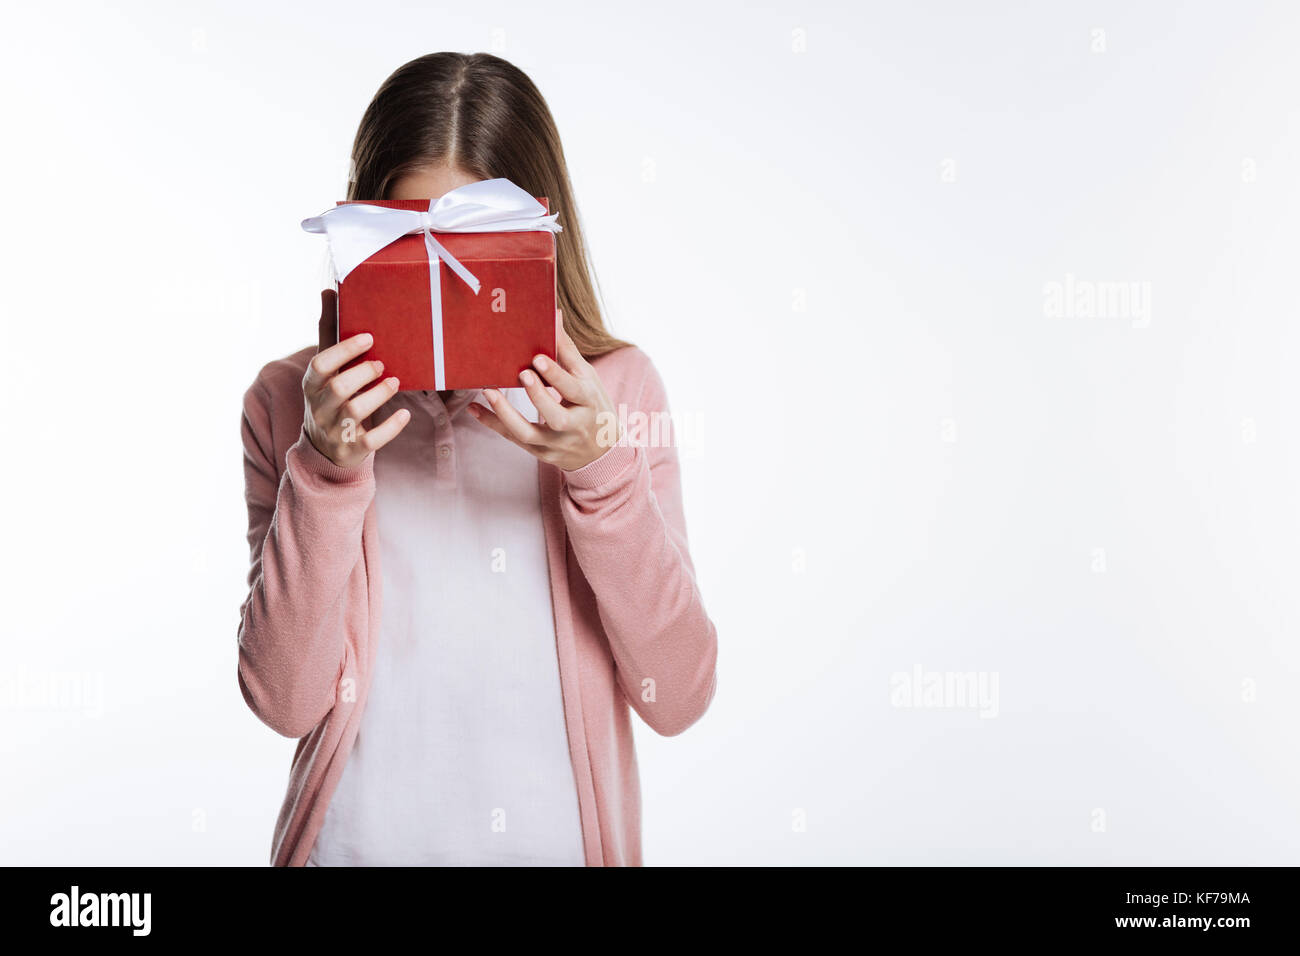 Shy girl hiding her face behind a gift box - Stock Image